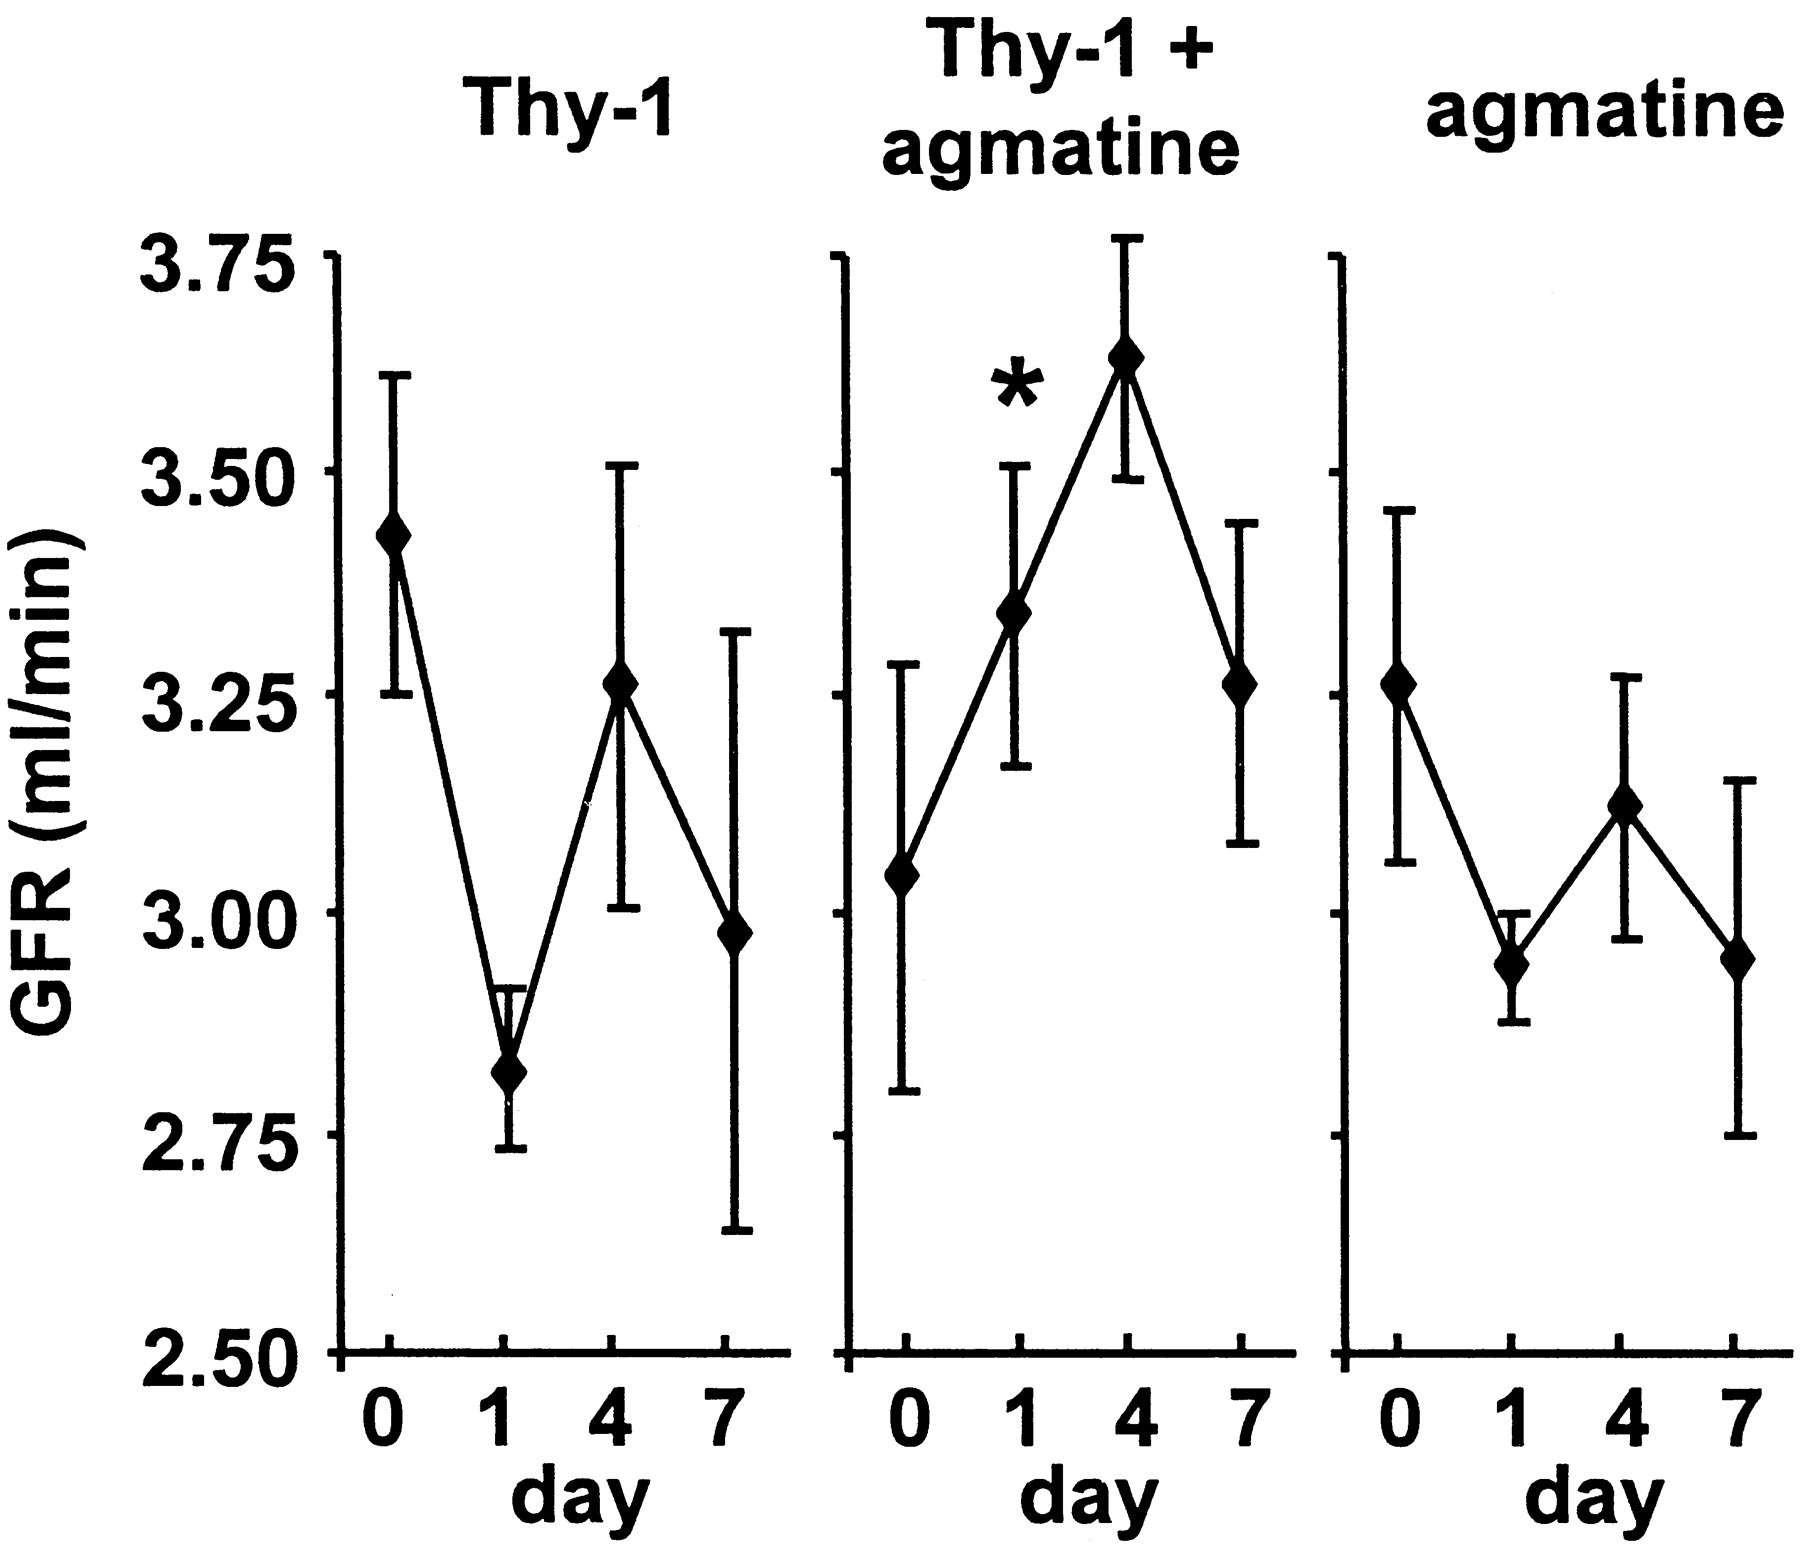 Agmatine Inhibits Cell Proliferation and Improves Renal